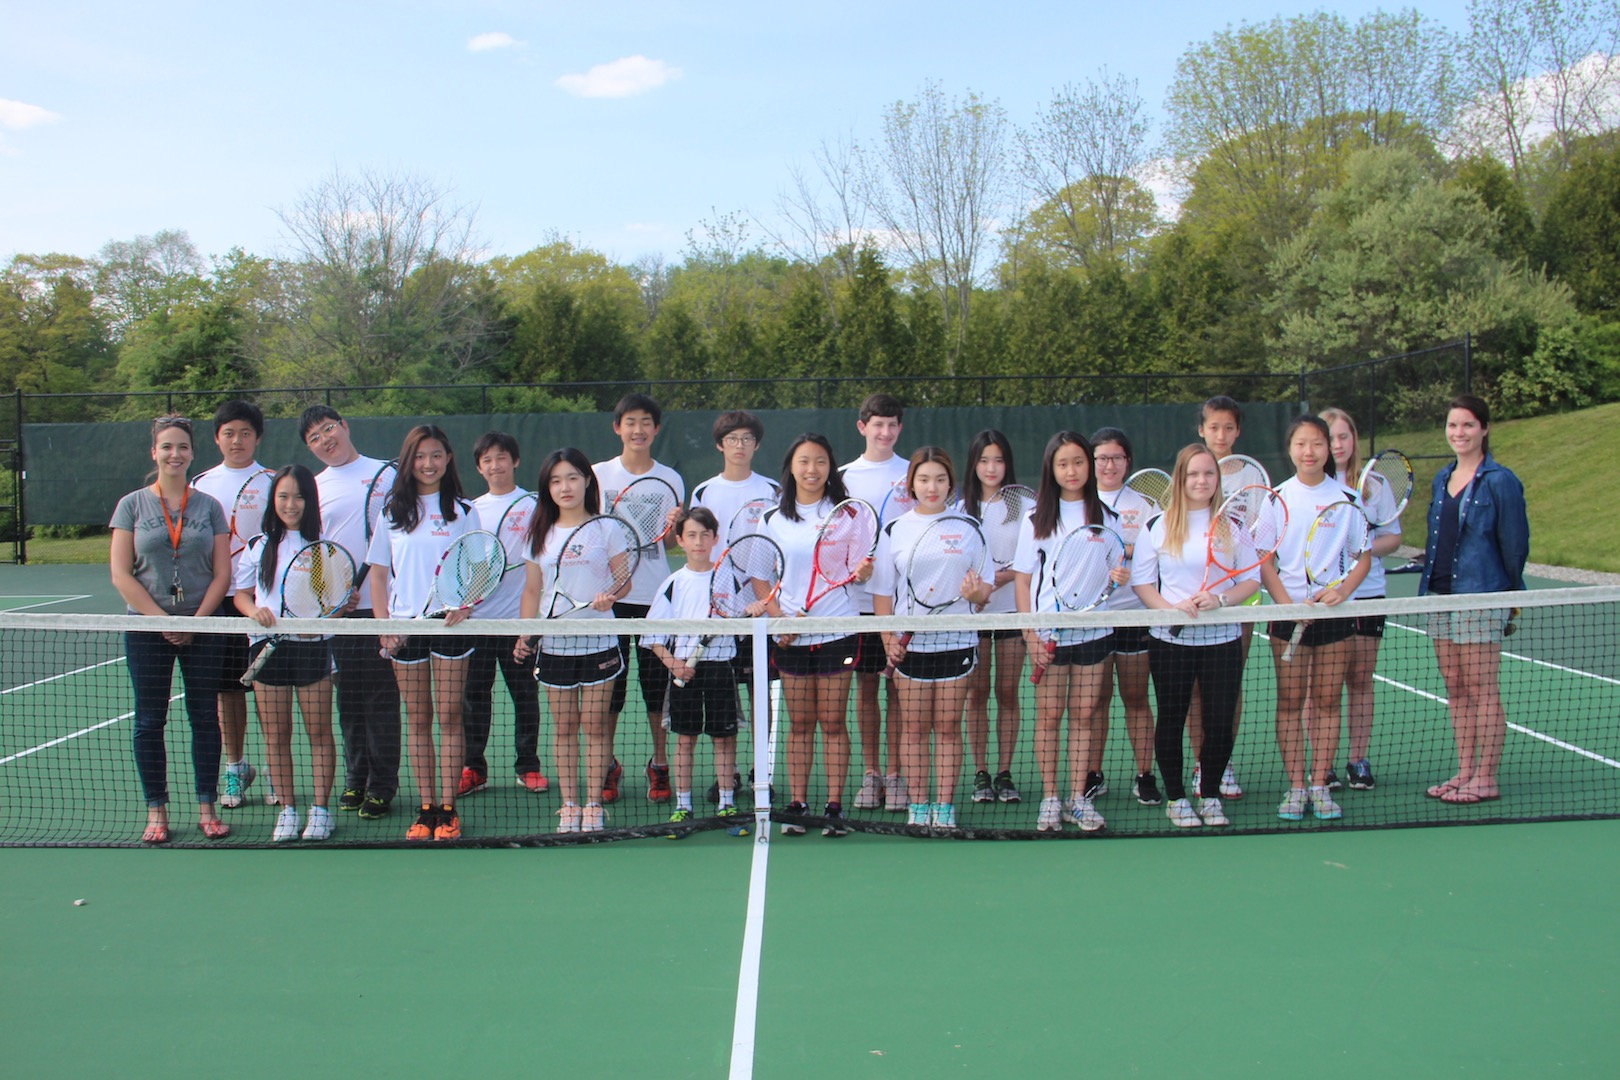 Rectory's 2016 JV Tennis Team with their coaches, Ms. Slocum and Mrs. Burke. The players enjoy working with their coaches and feel they have learned a lot of tennis skills from them.